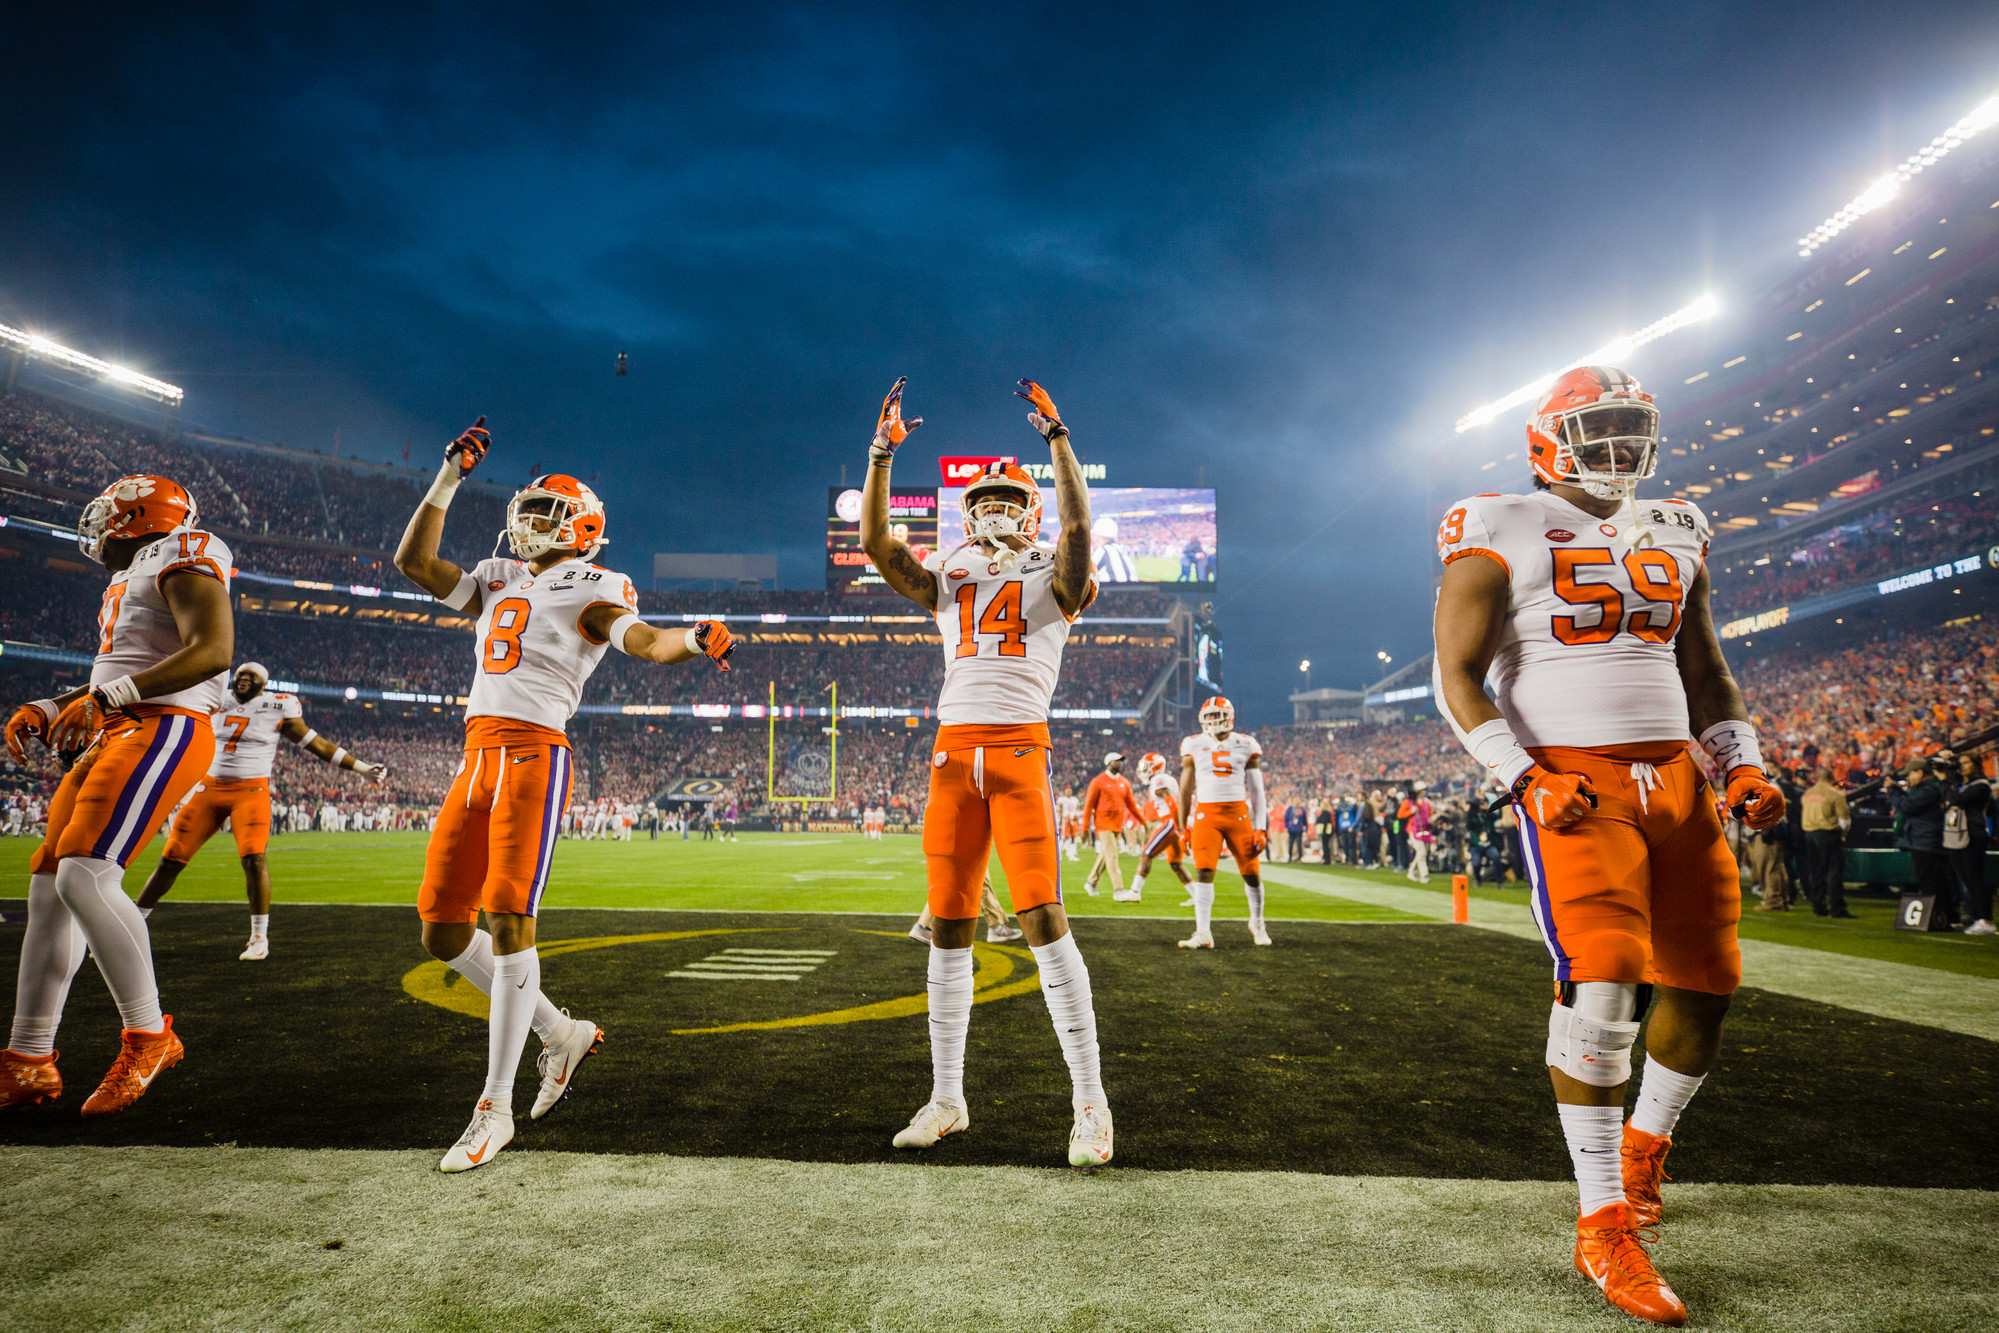 Clemson players celebrate after scoring the first points of the 2019 CFP National Championship at Levi's Stadium in Santa Clara, California, on Monday, Jan. 7. The Tigers routed Alabama to win 44-16.